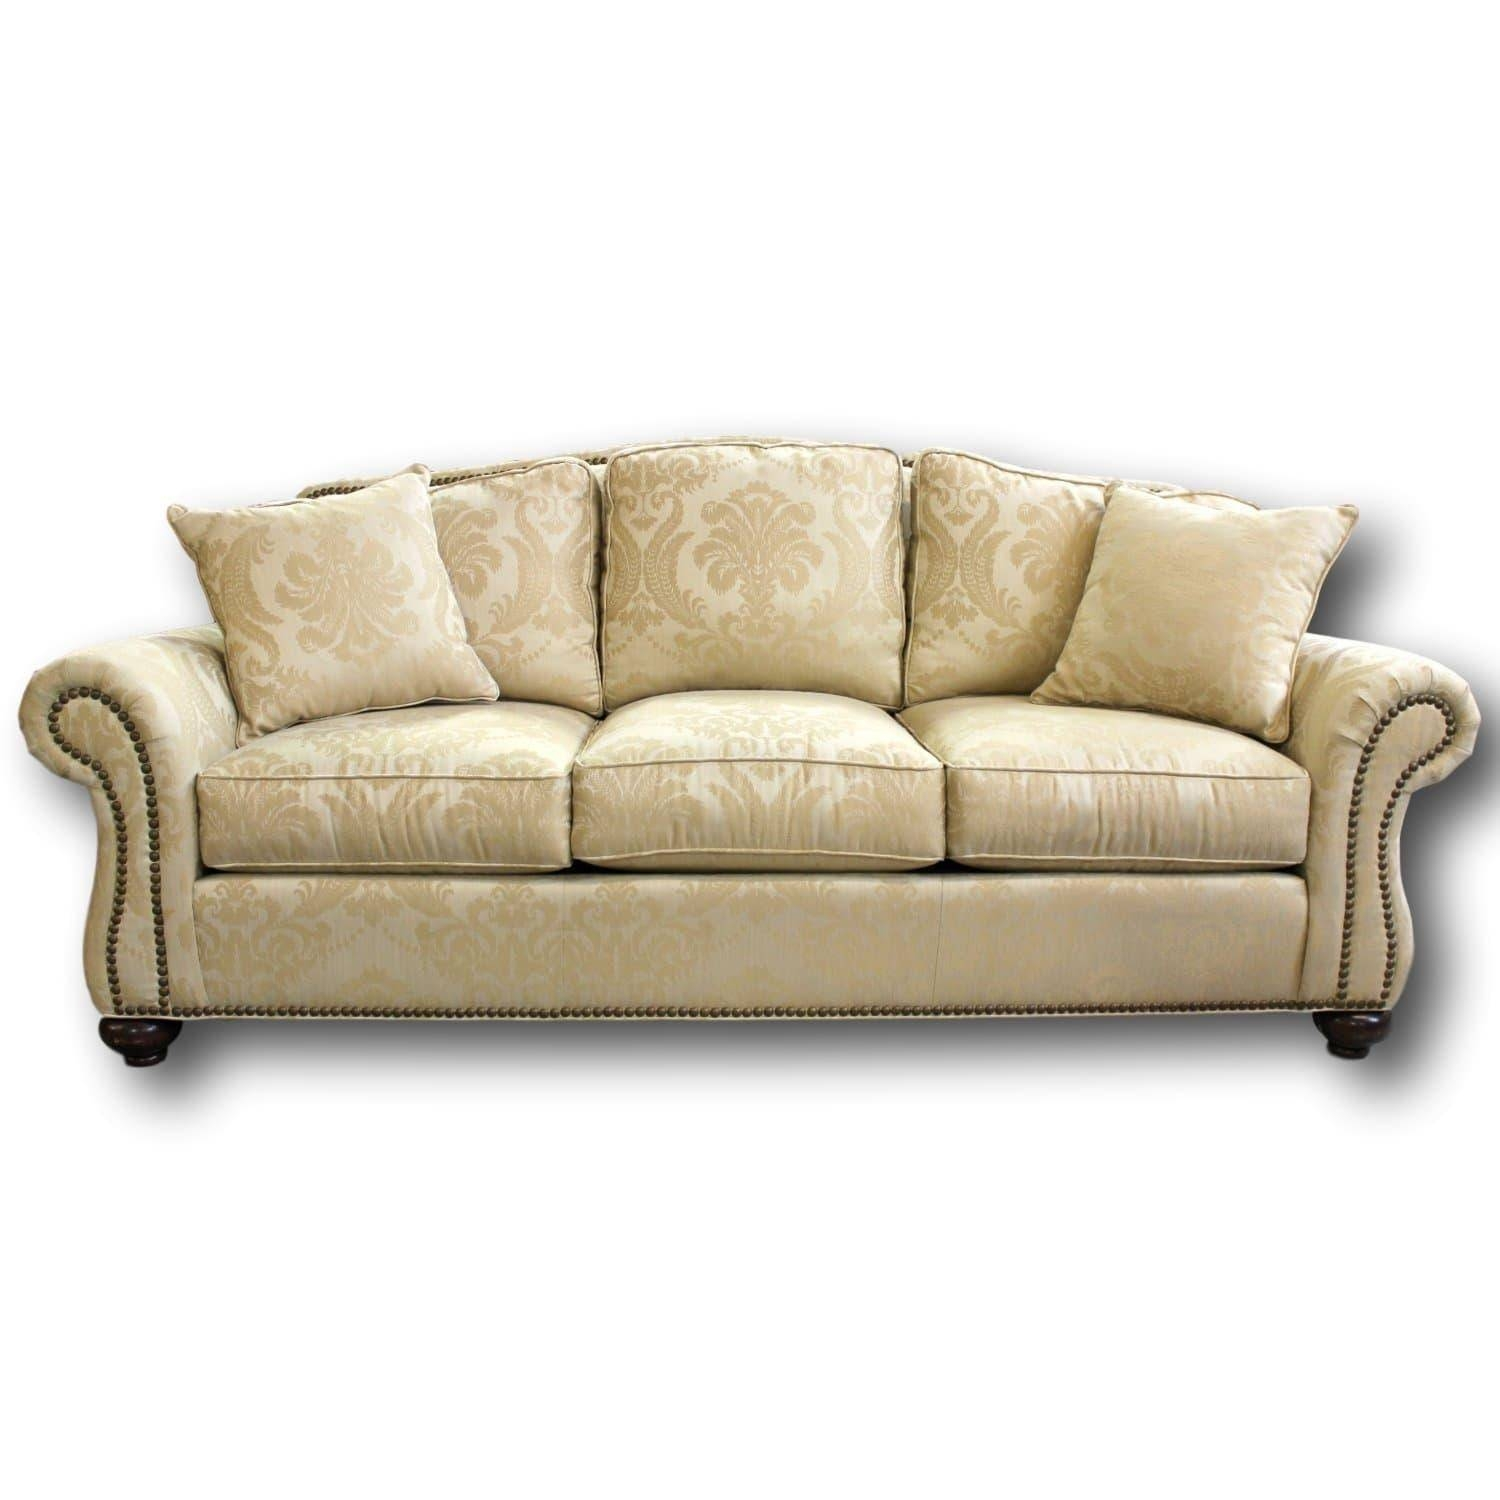 20 Ideas Of Alan White Loveseats | Sofa Ideas regarding Alan White Loveseats (Image 3 of 15)